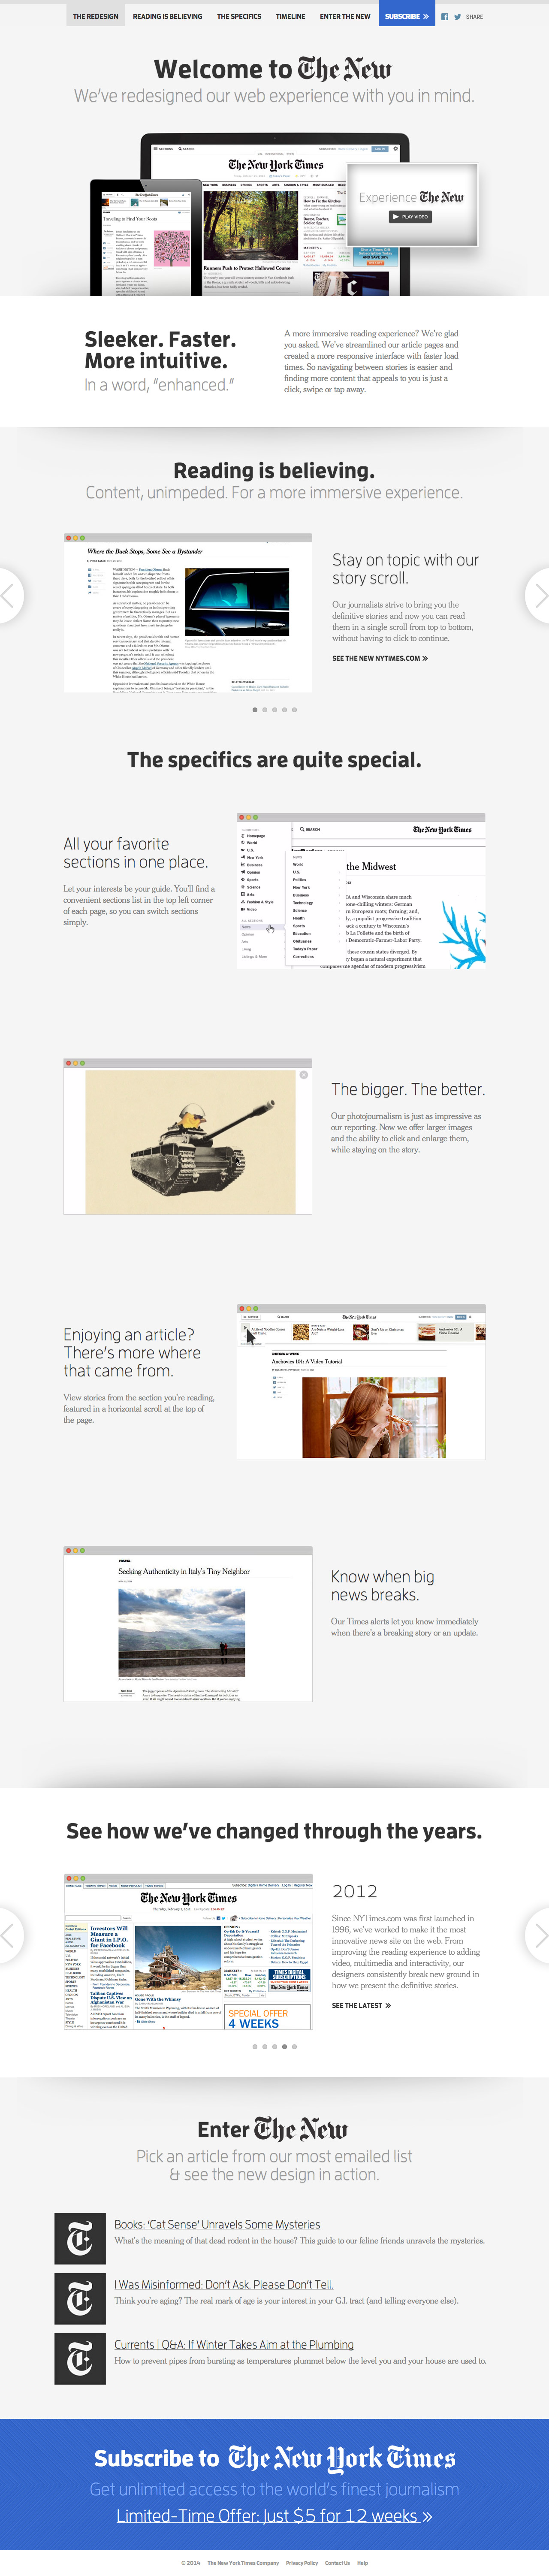 New York Times 2014 Redesign Website Screenshot